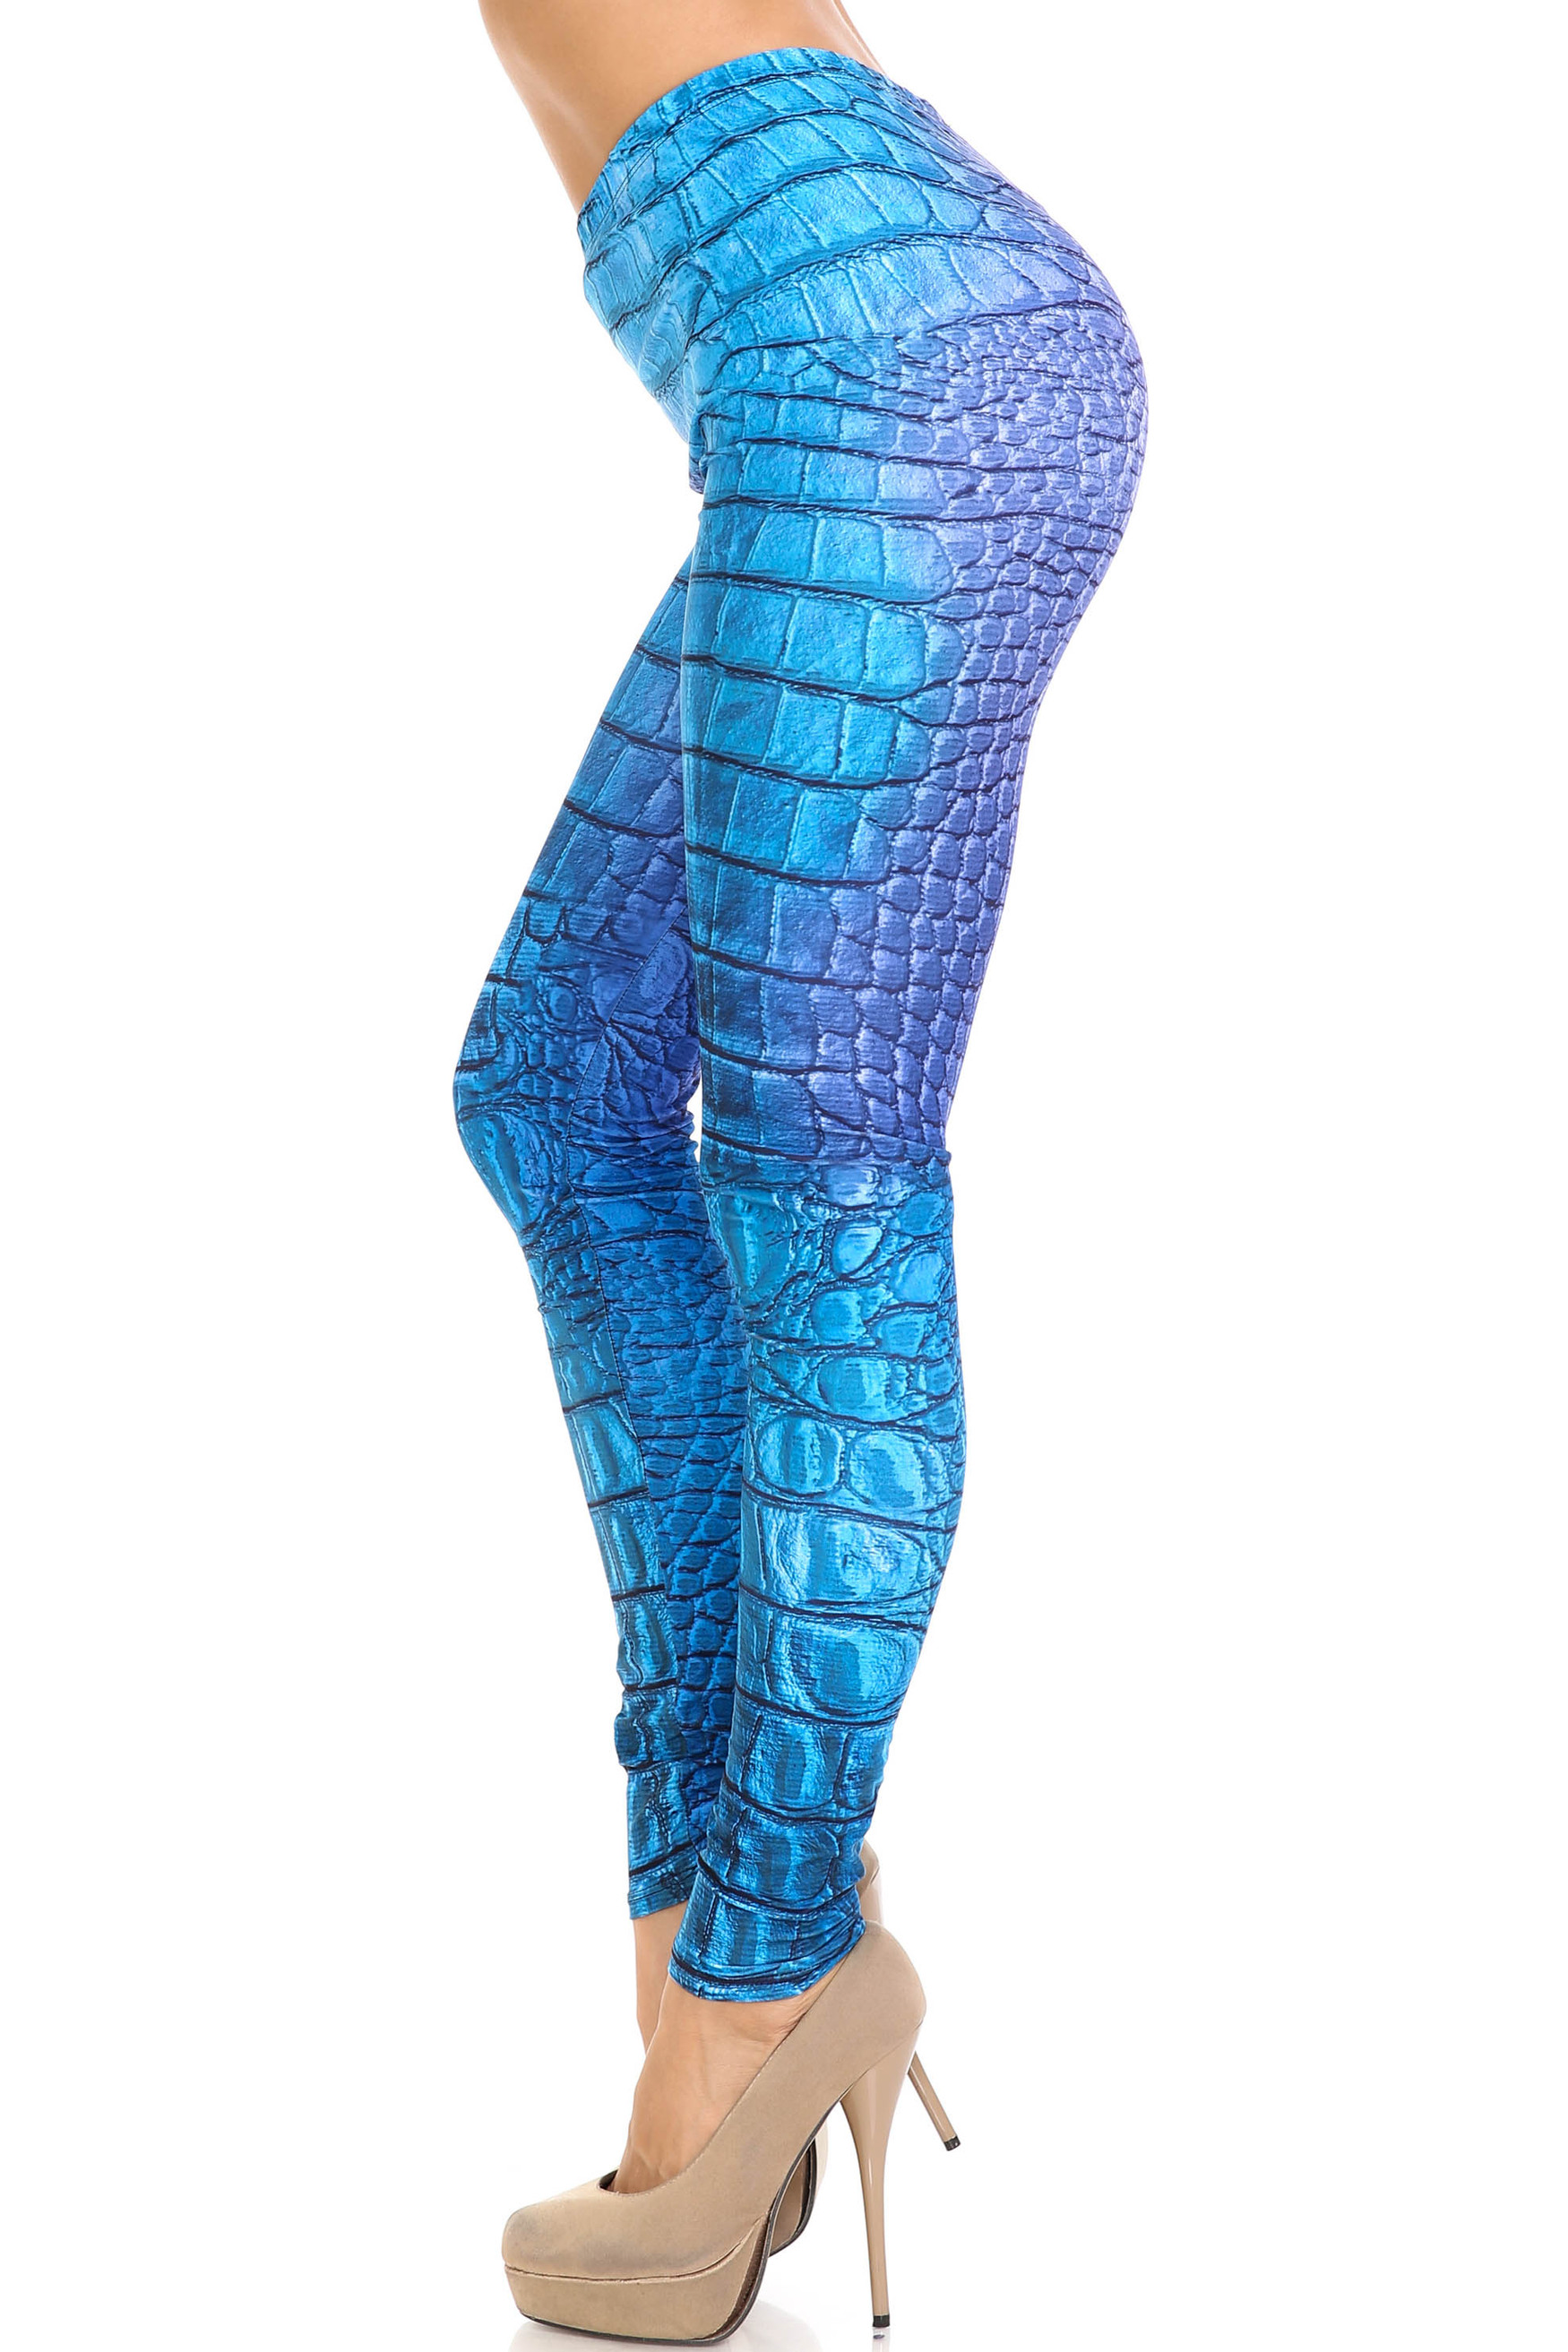 Creamy Soft Vibrant Blue Reptile Extra Plus Size Leggings - 3X-5X - By USA Fashion™